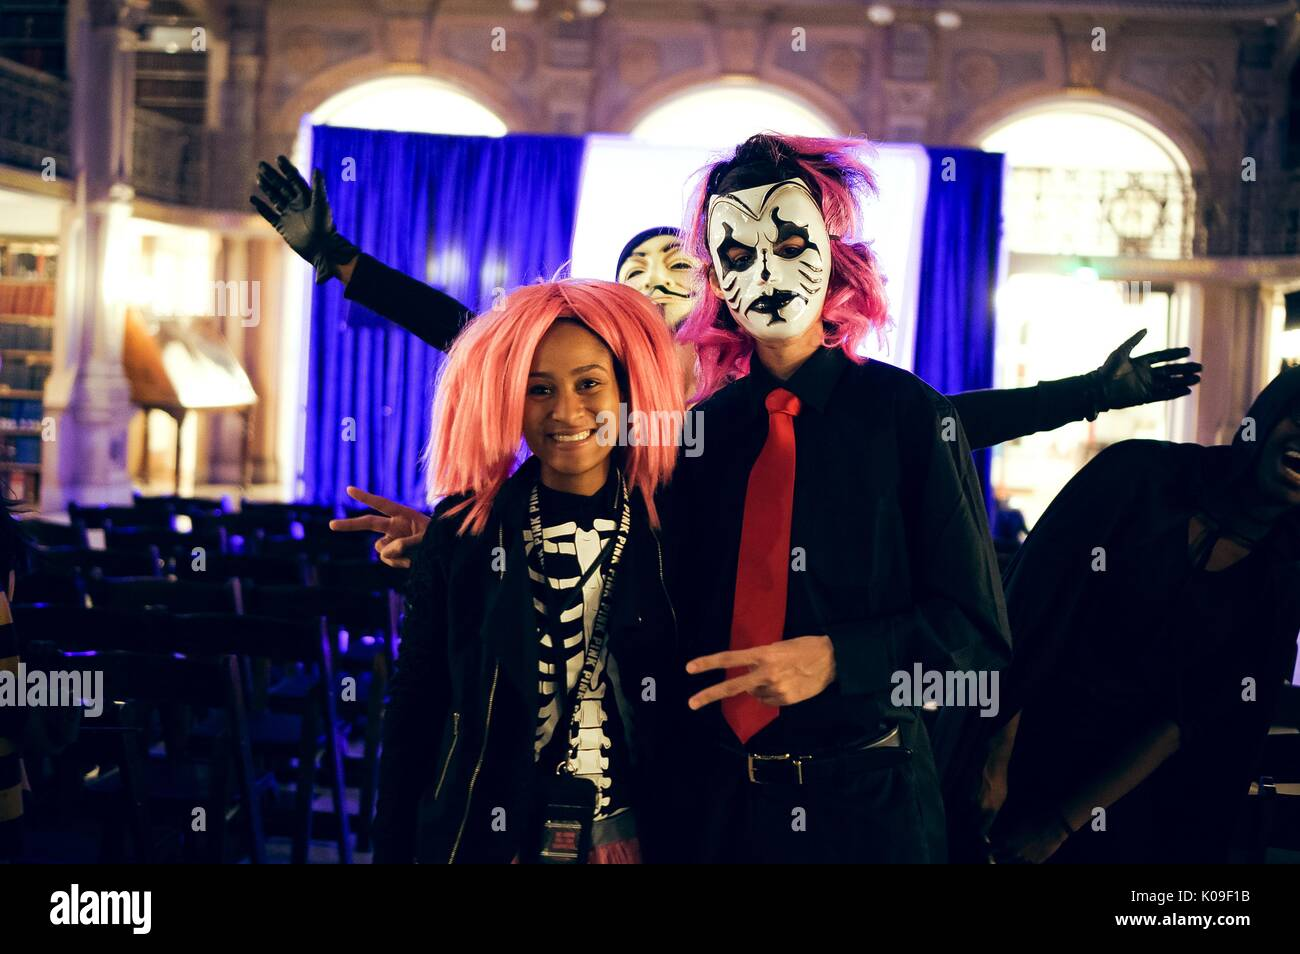 Two students, female on the right dressed in a pink wig and a black skeleton shirt, male on the right wearing a black shirt with a rd tie and black and white face paint with a bright pink wig, a student wearing the Anonymous mask photobombing behind them with arms outstretched; smiling facial expressions, Halloween at Peabody, October 31, 2015. Courtesy Eric Chen. - Stock Image